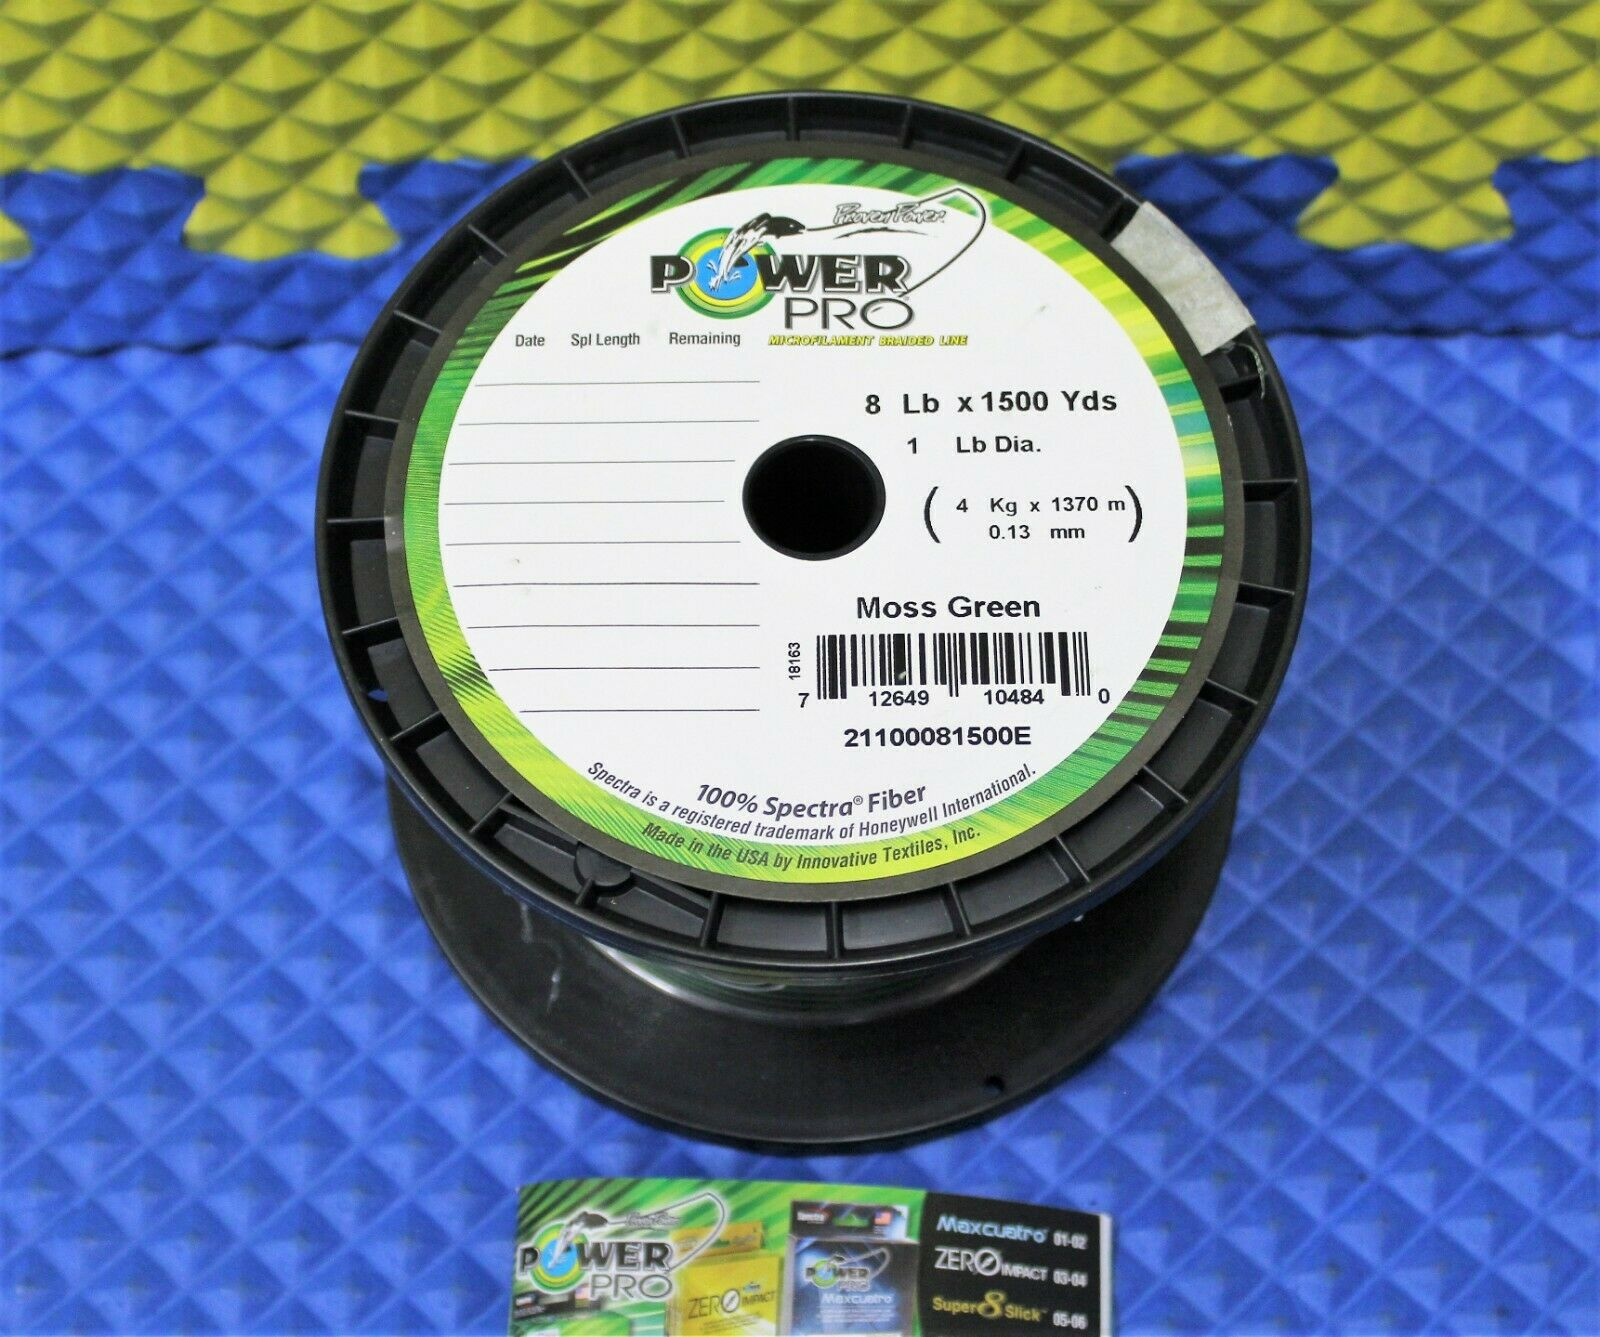 Power Pro Microfilament Braided Fishing Line 8 lb. 1500 yds. Moss Green 18163